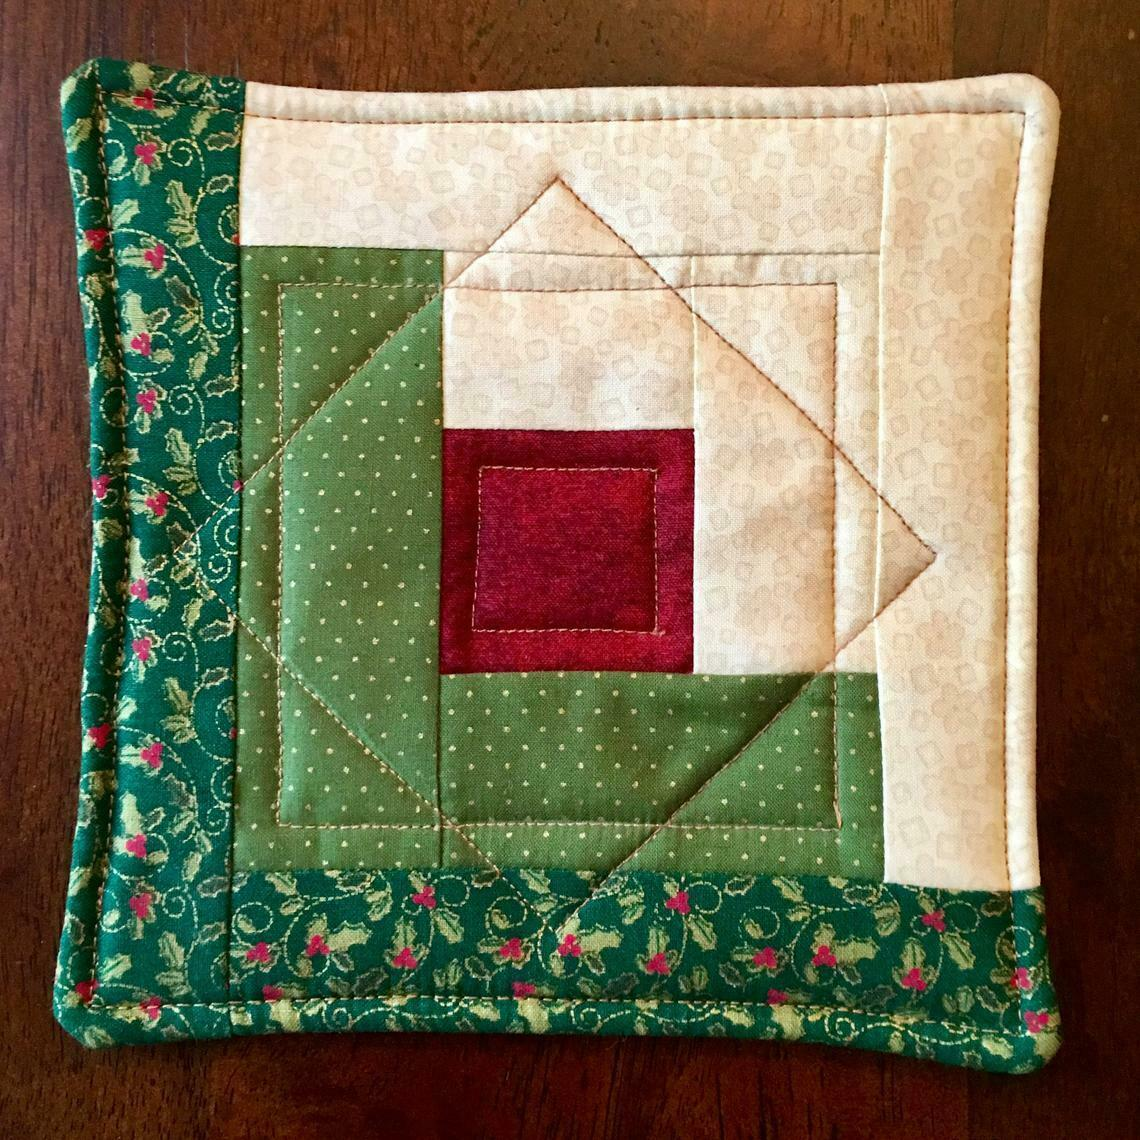 Christmas Pot Holder Quilted Handmade Holiday Log Cabin Block Heat Resistant image 2